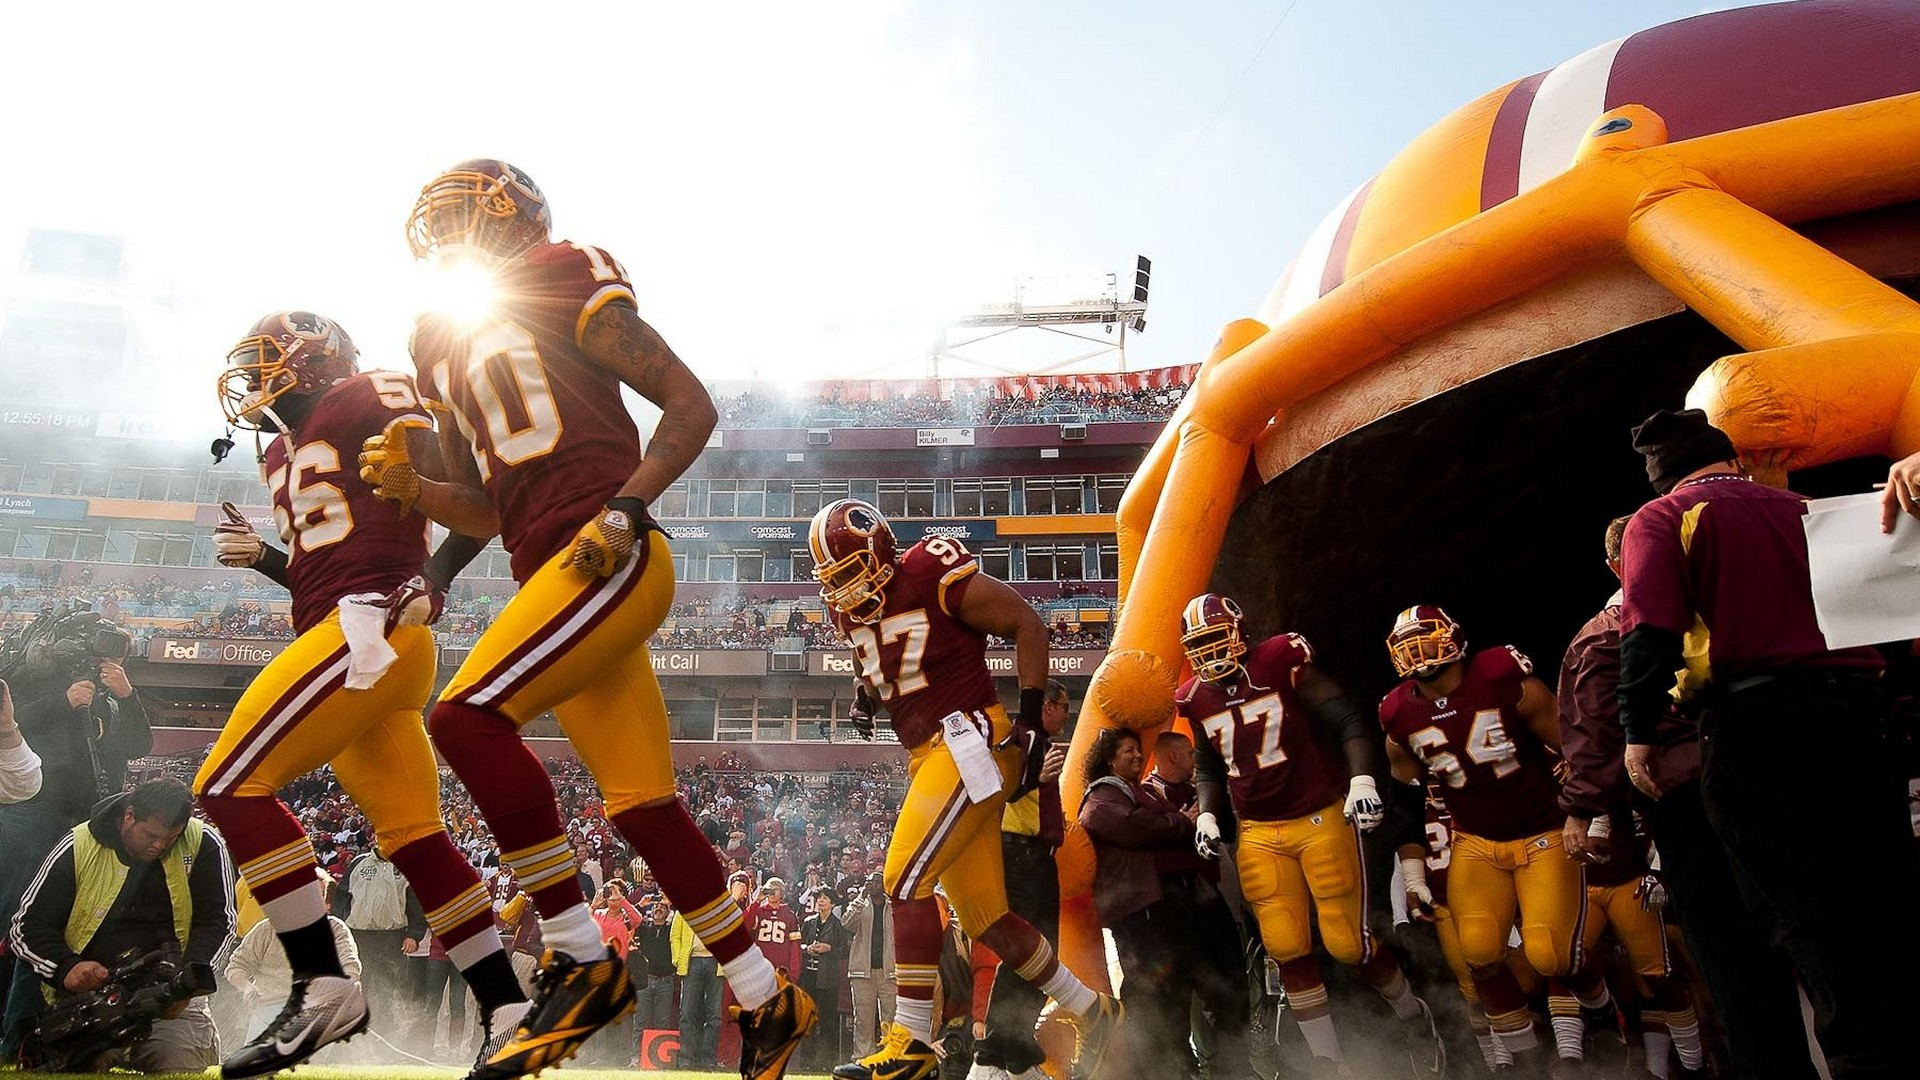 HD Washington Redskins Wallpapers 2020 NFL Football Wallpapers 1920x1080